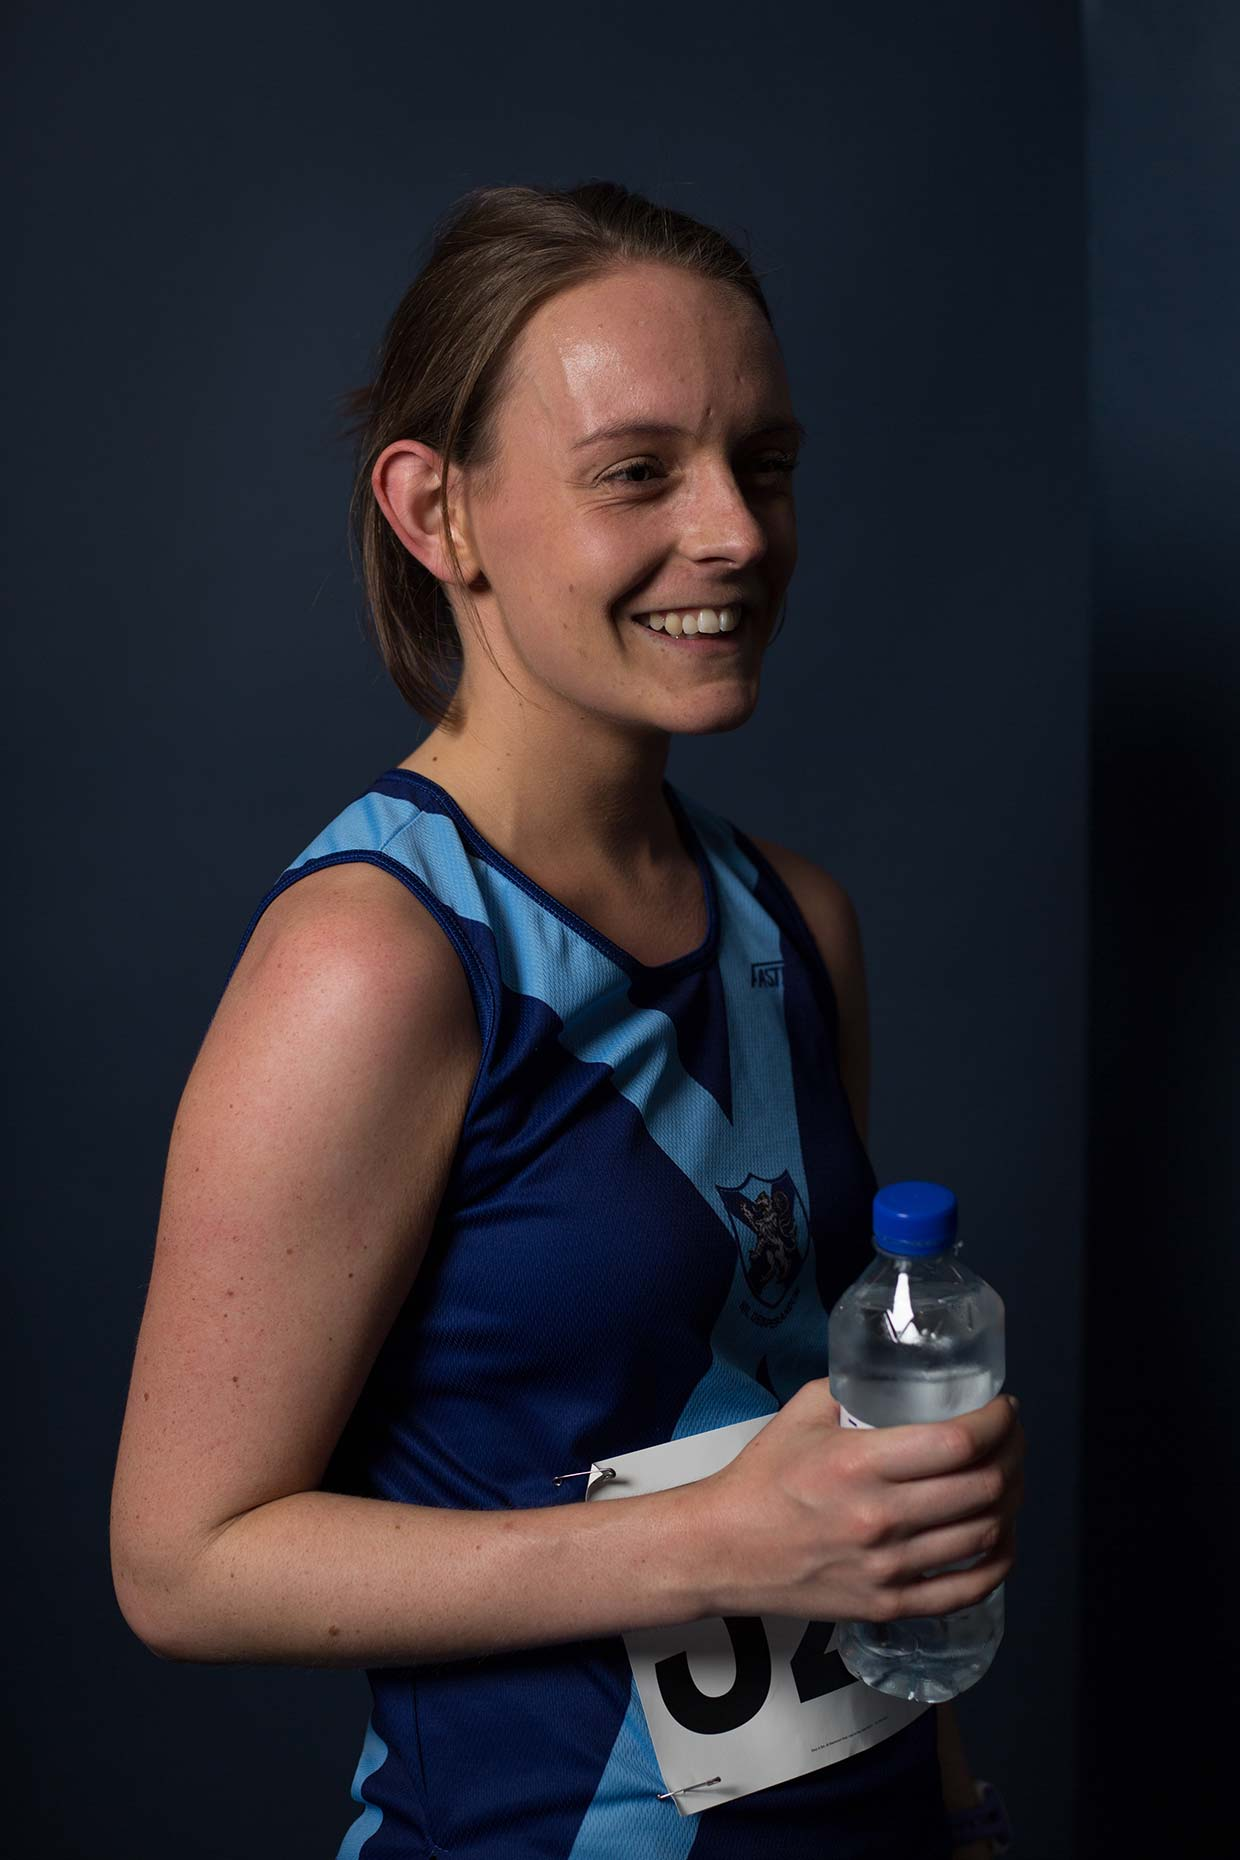 Portrait of female runner at Bellahouston Harriers running club, by Scotland photographer